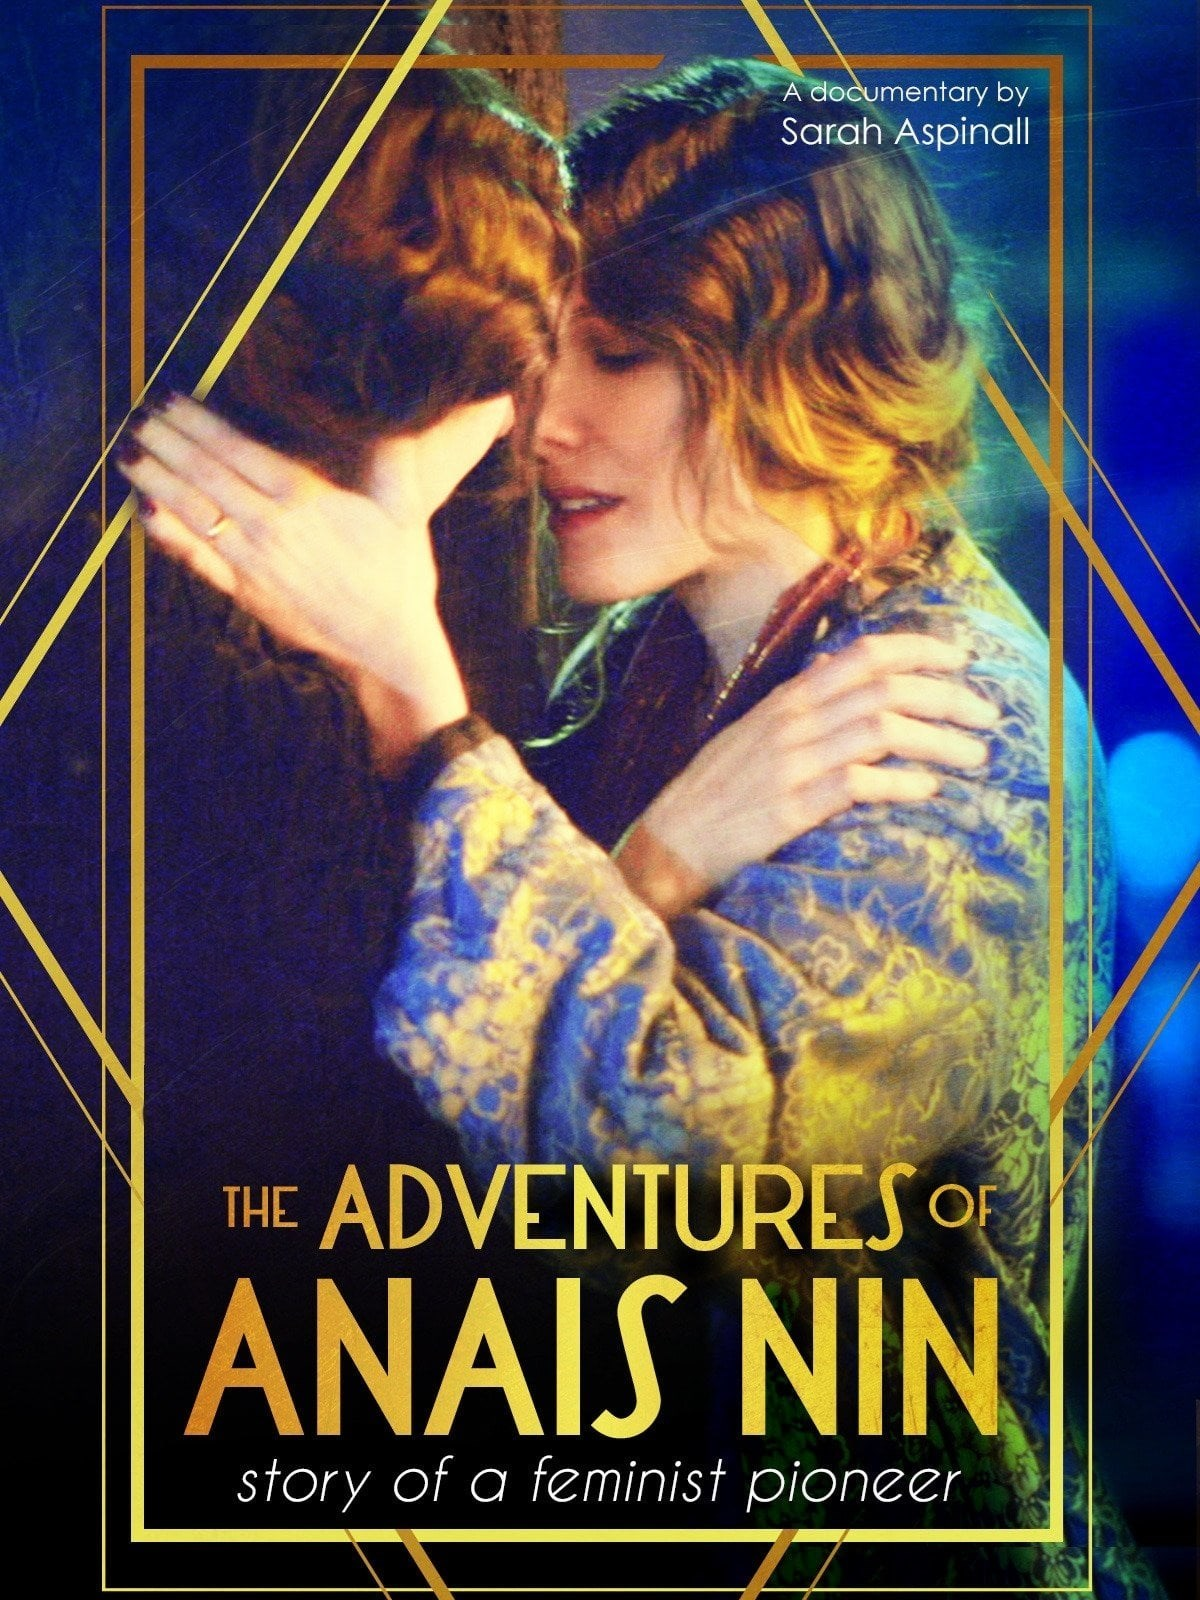 18+ The Erotic Adventures Of Anais Nin 2015 English 1080p HDRip 1.1GB Download